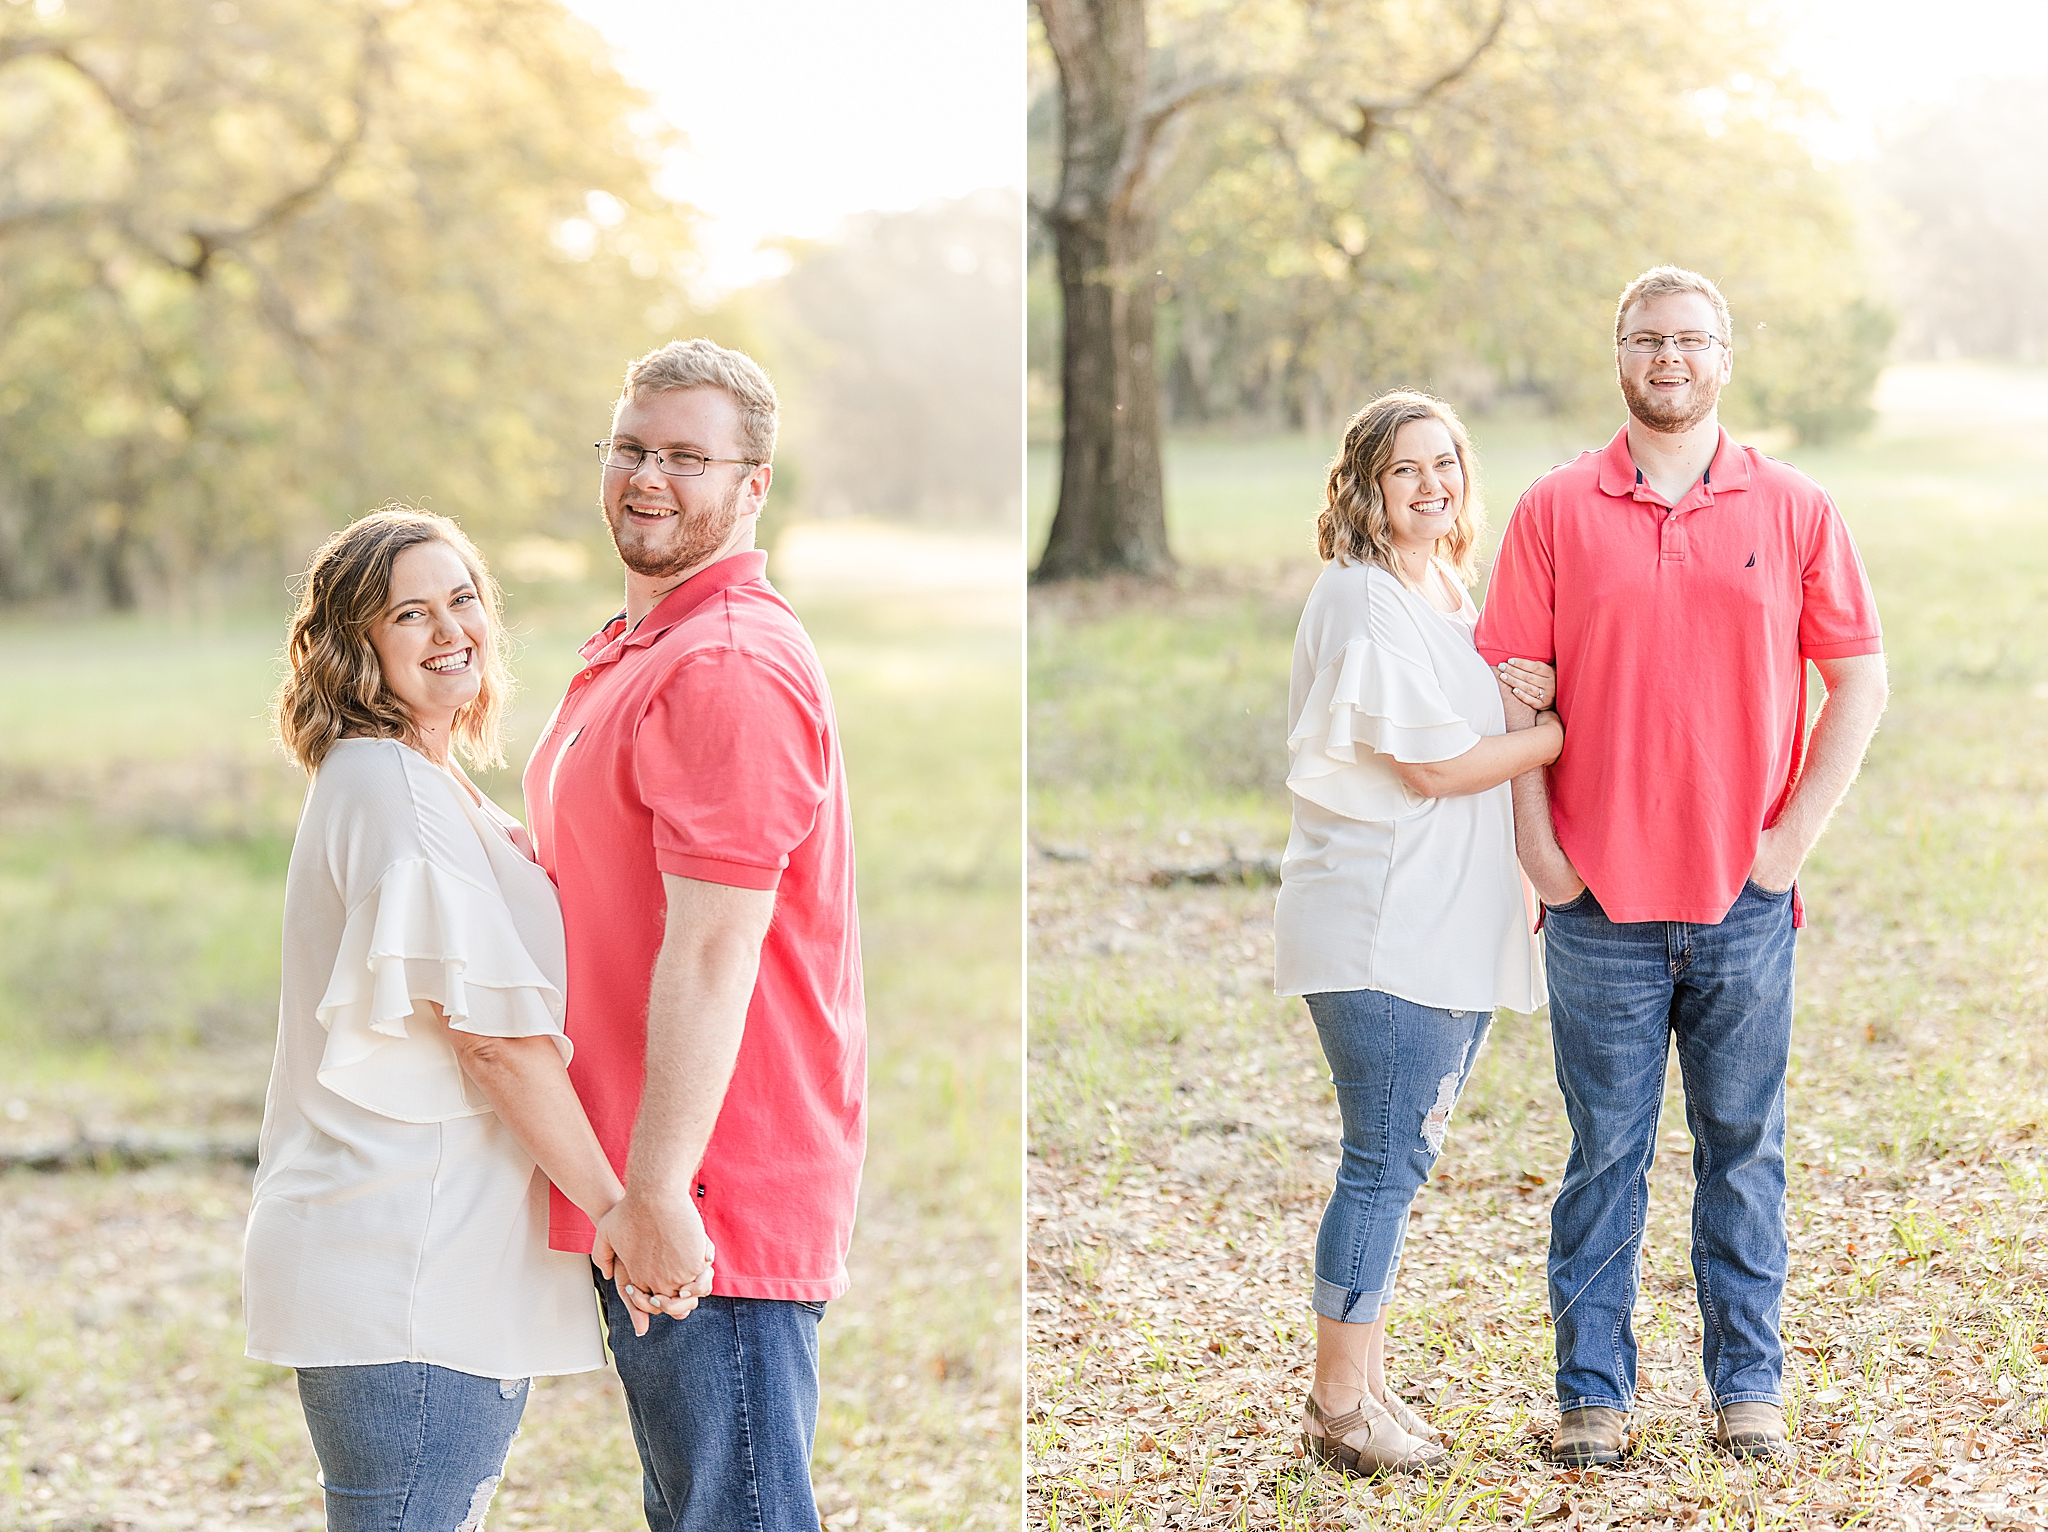 spring Gulf State Park Engagement Session with couple in casule attire